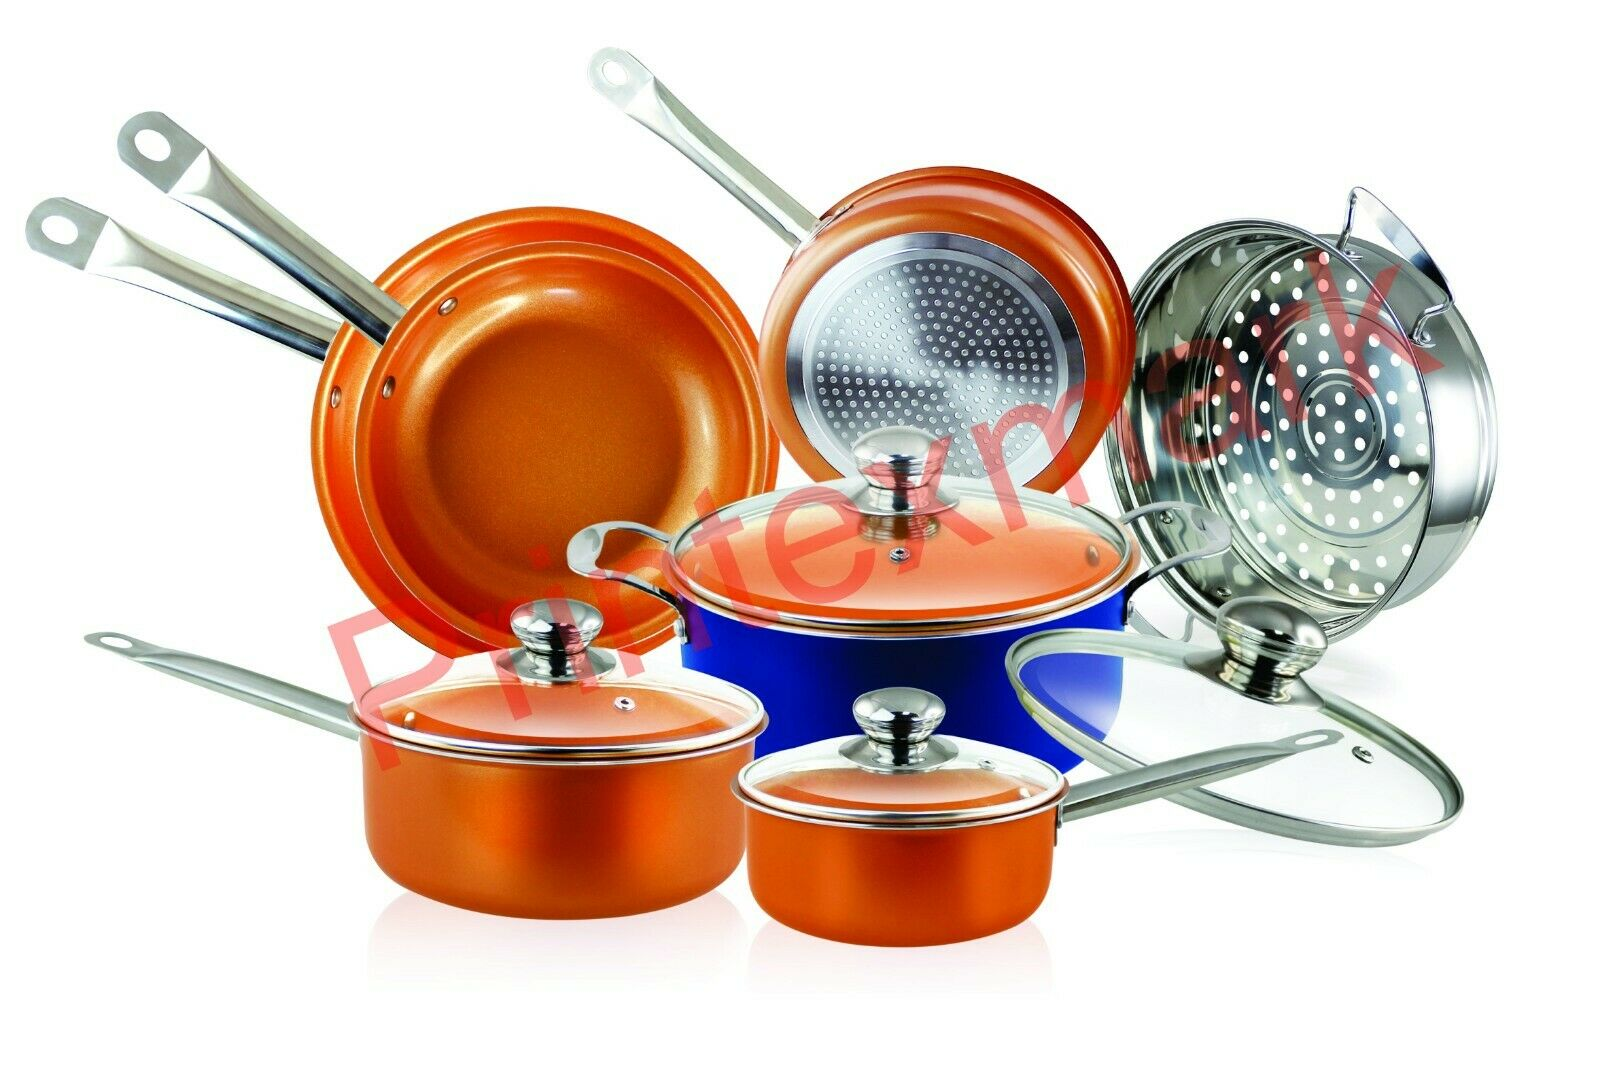 10-Piece Copper Cookware Set Luxury Induction Nonstick Skill